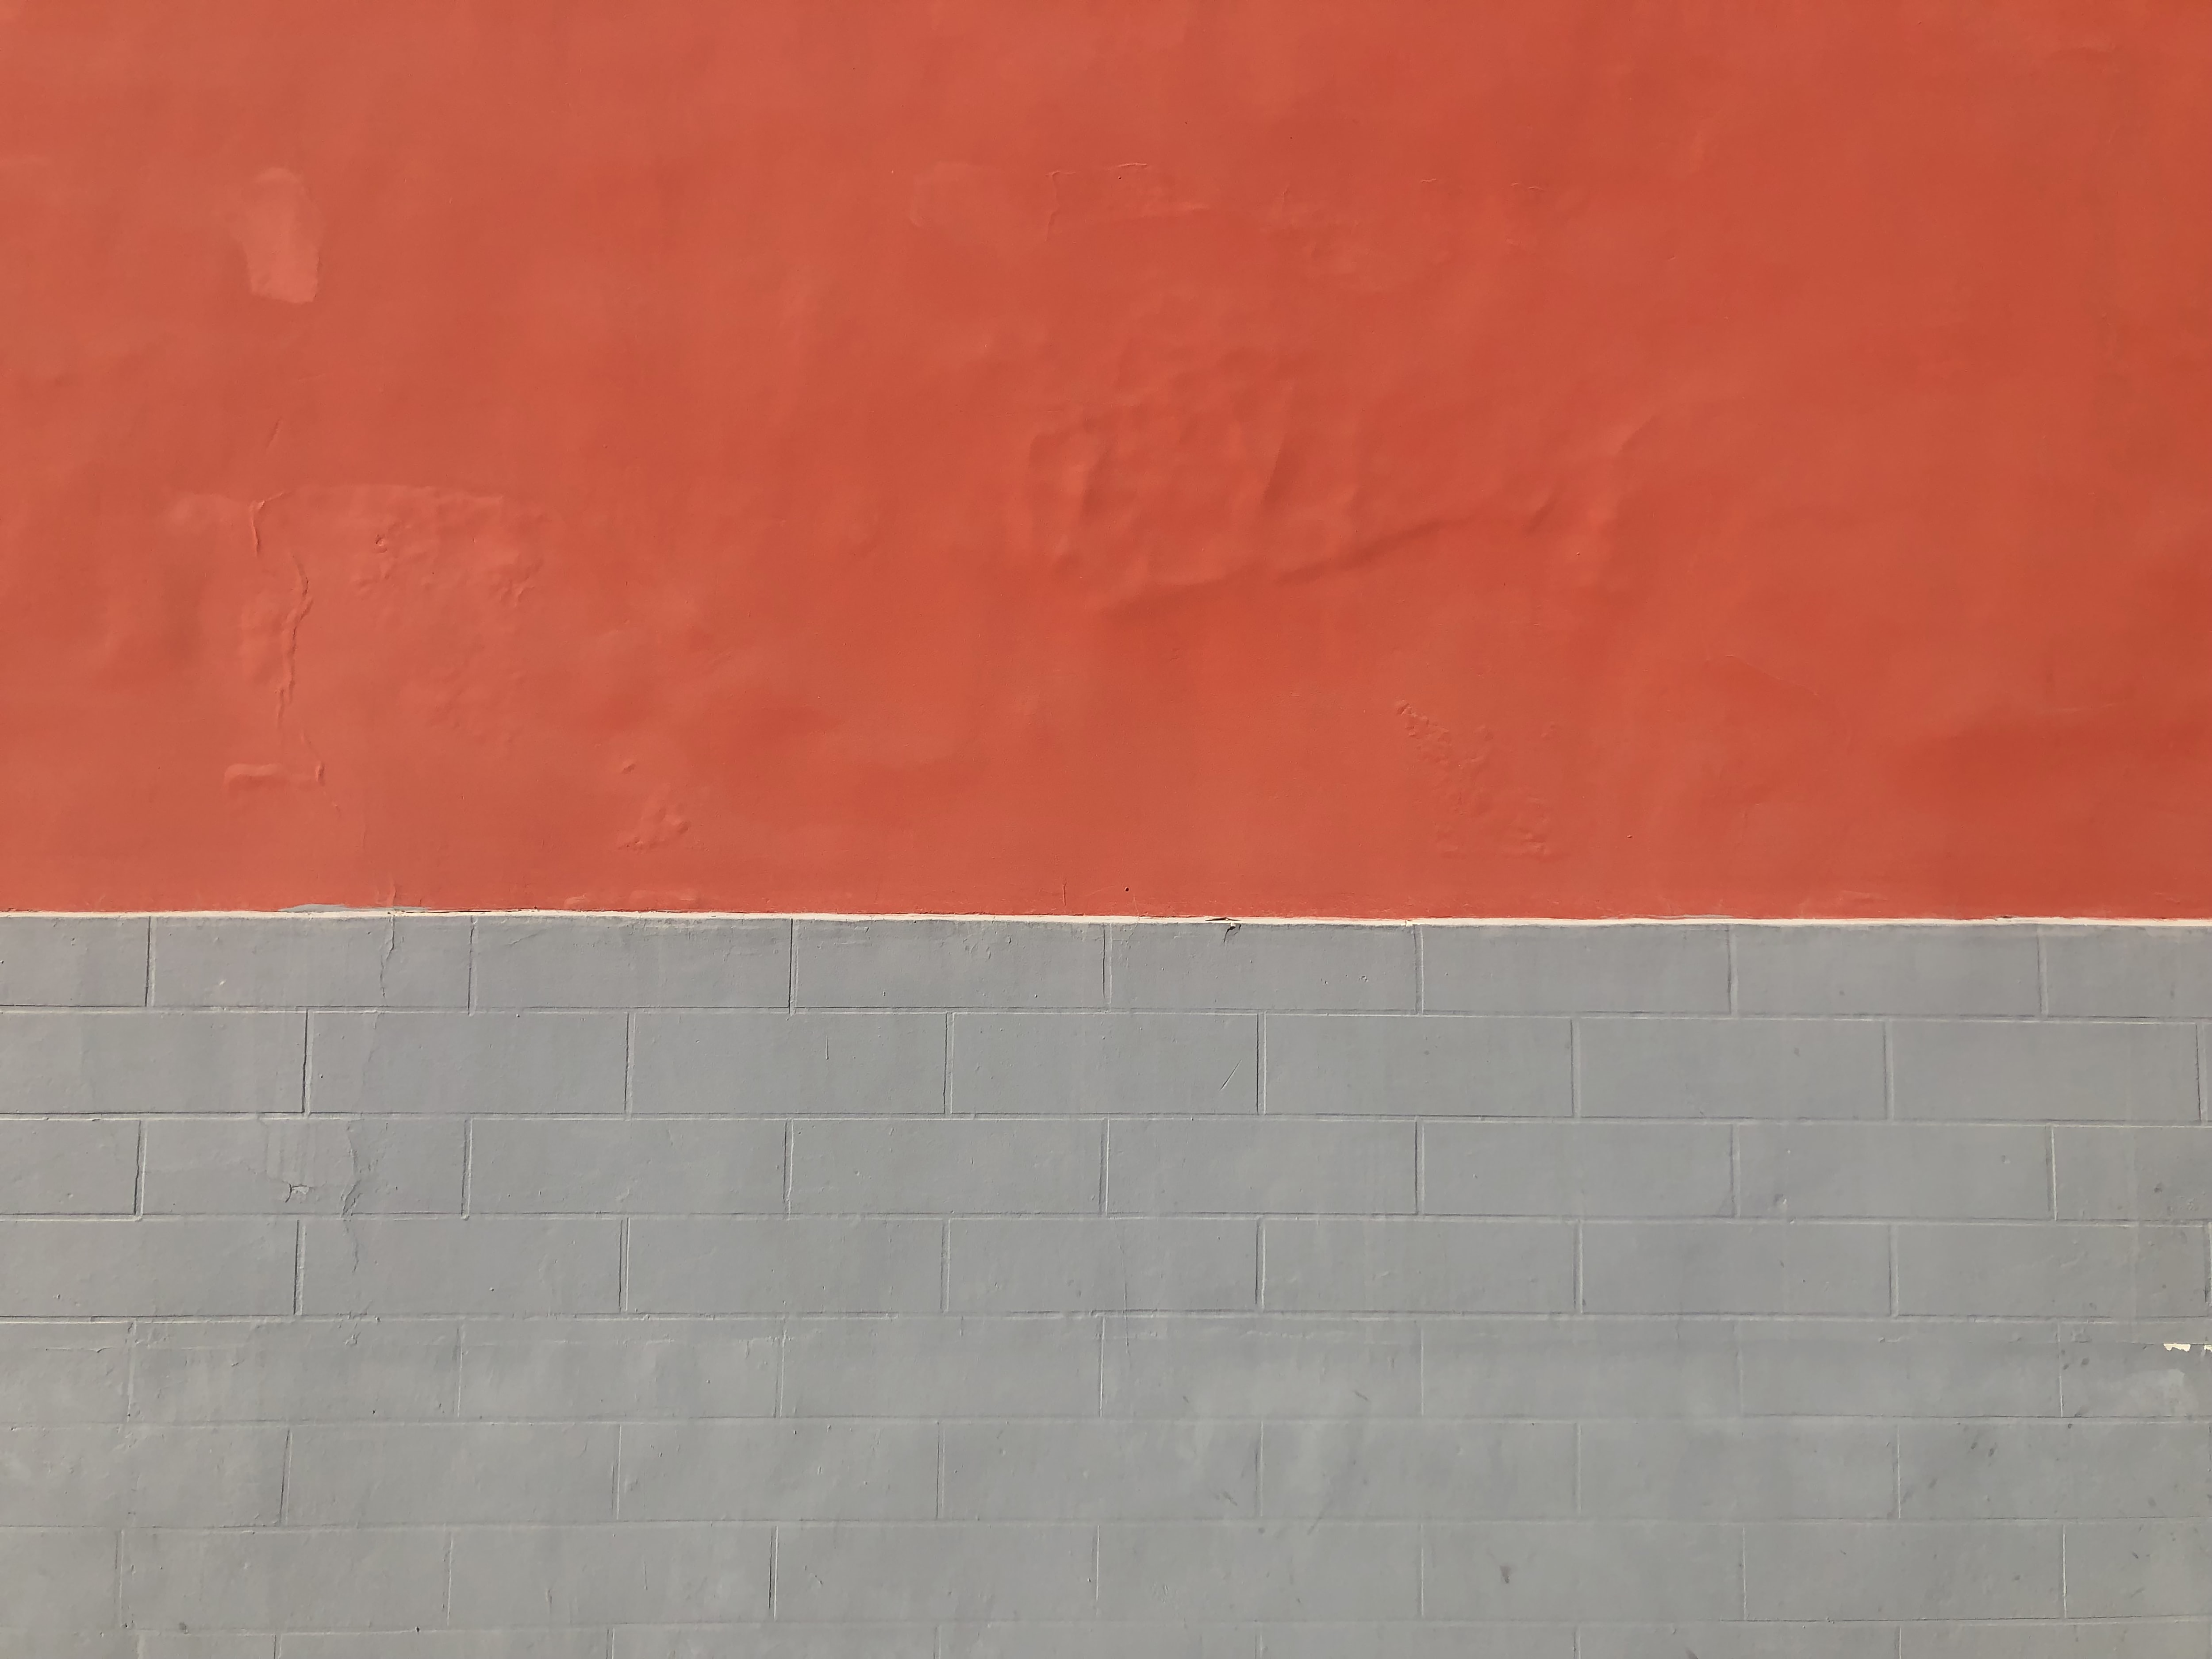 gray and orange painted wall